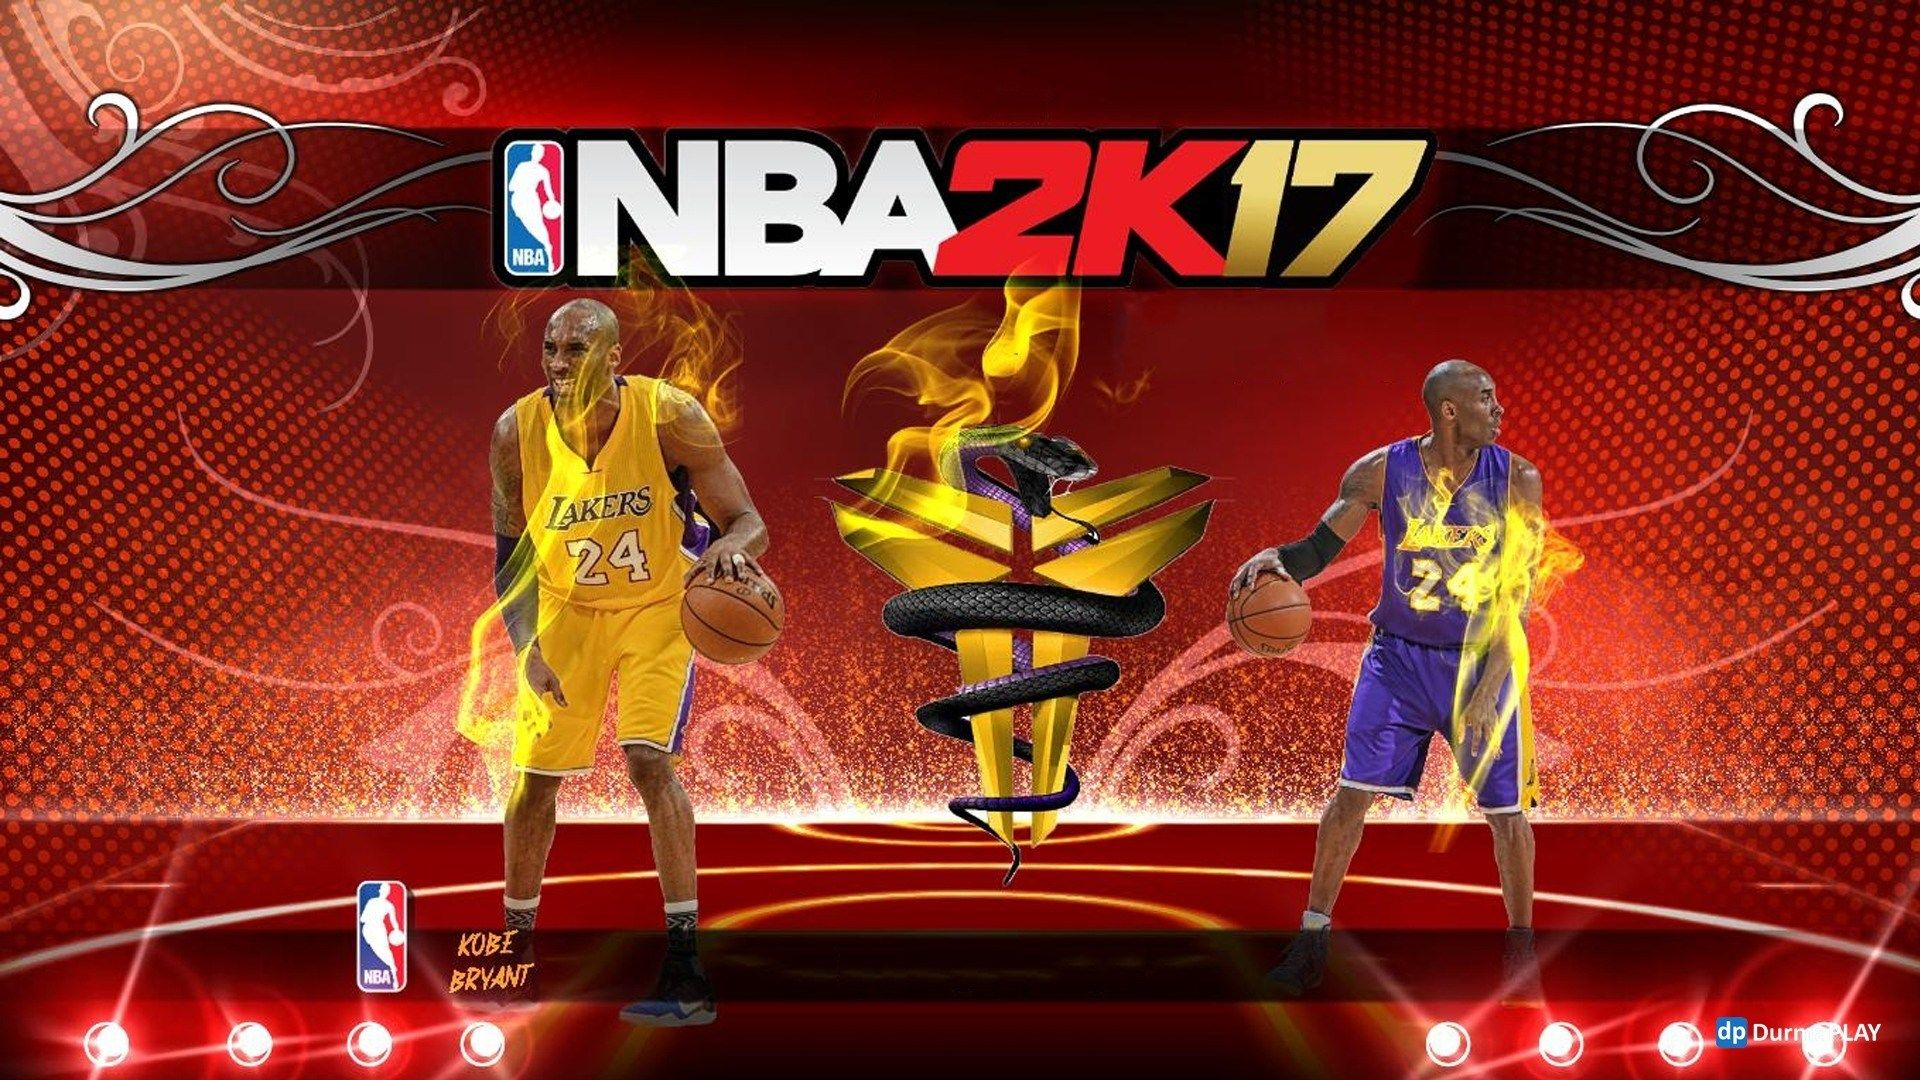 Hd wallpaper nba - Nba 2k17 Hd Wallpapers